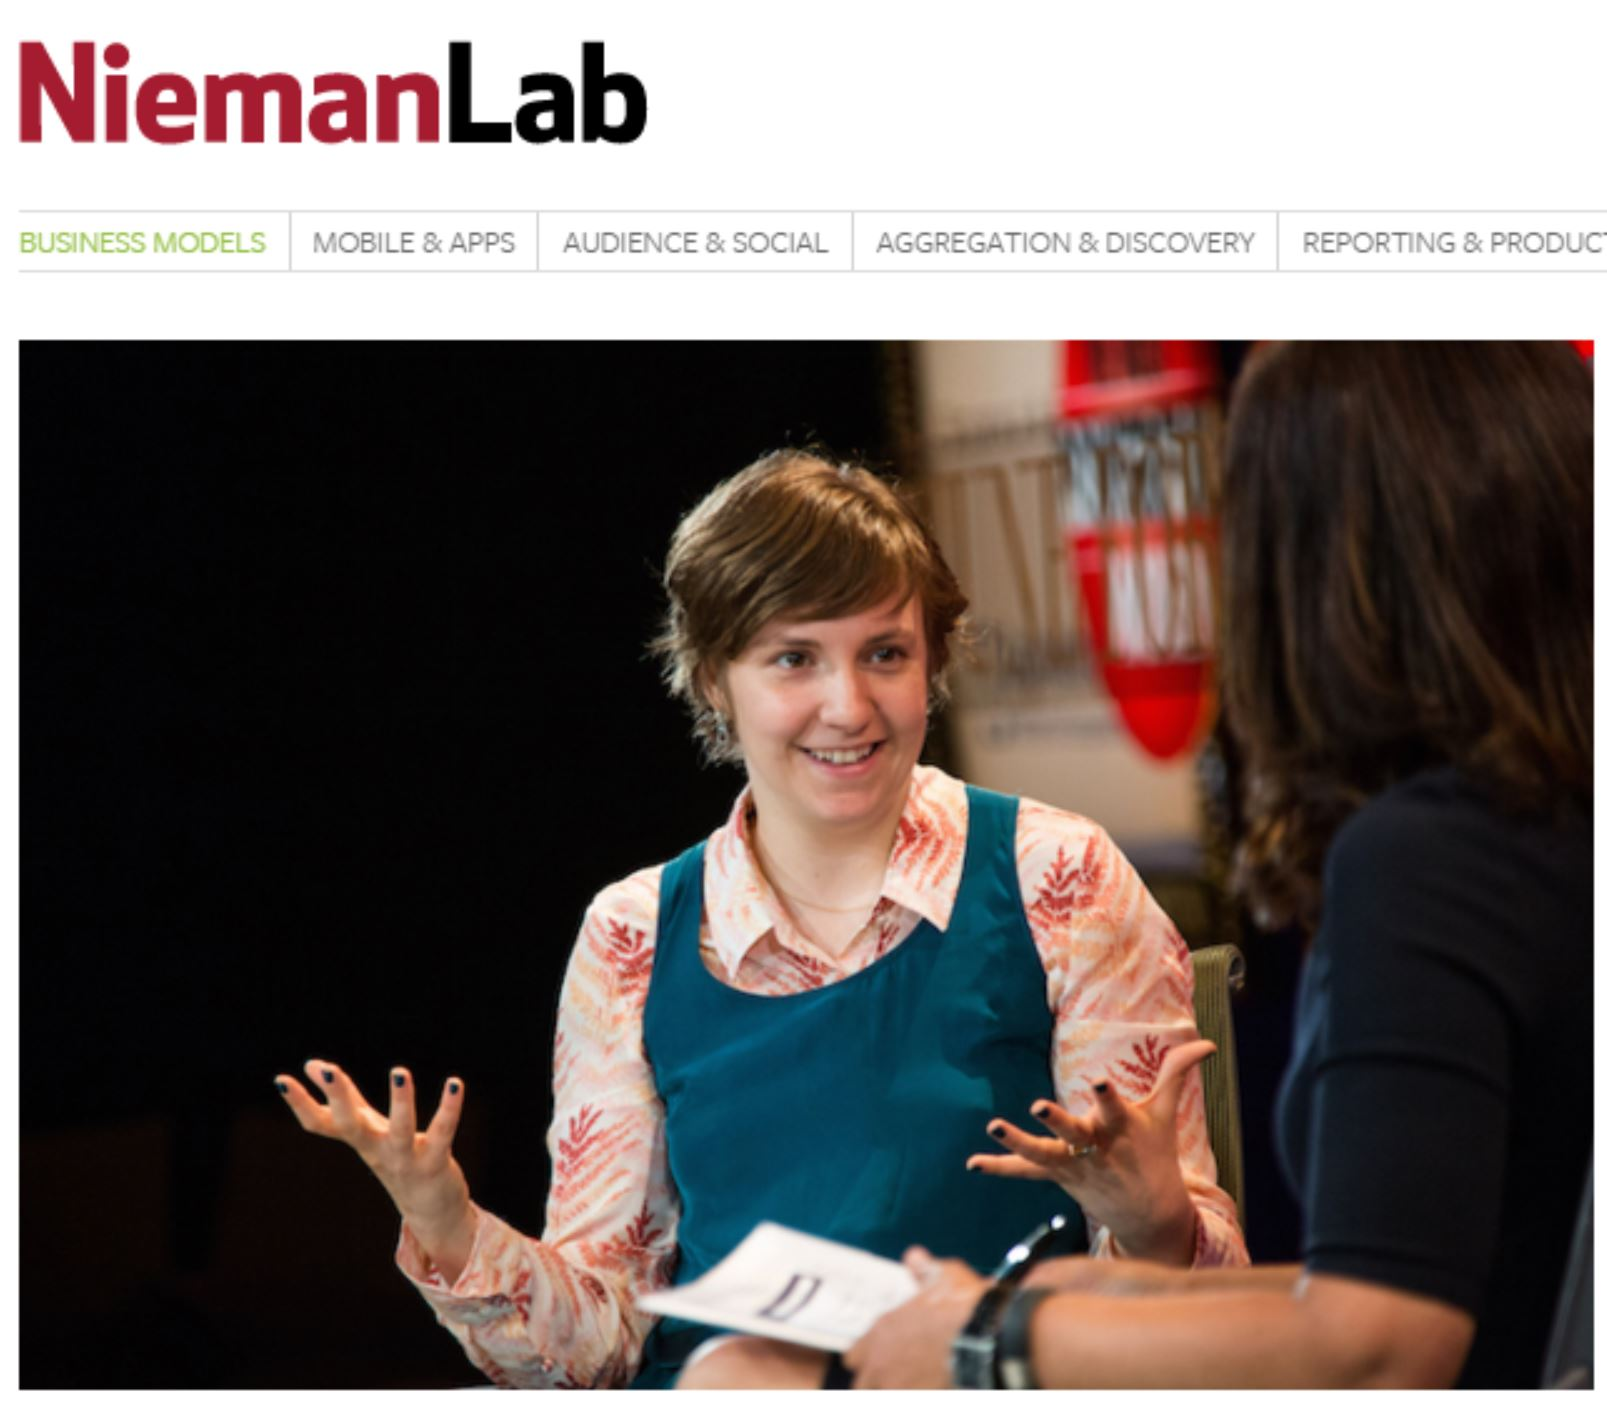 Lena Dunham's Lenny Letter has grown to 400,000 subscribers with a 65 percent open rate